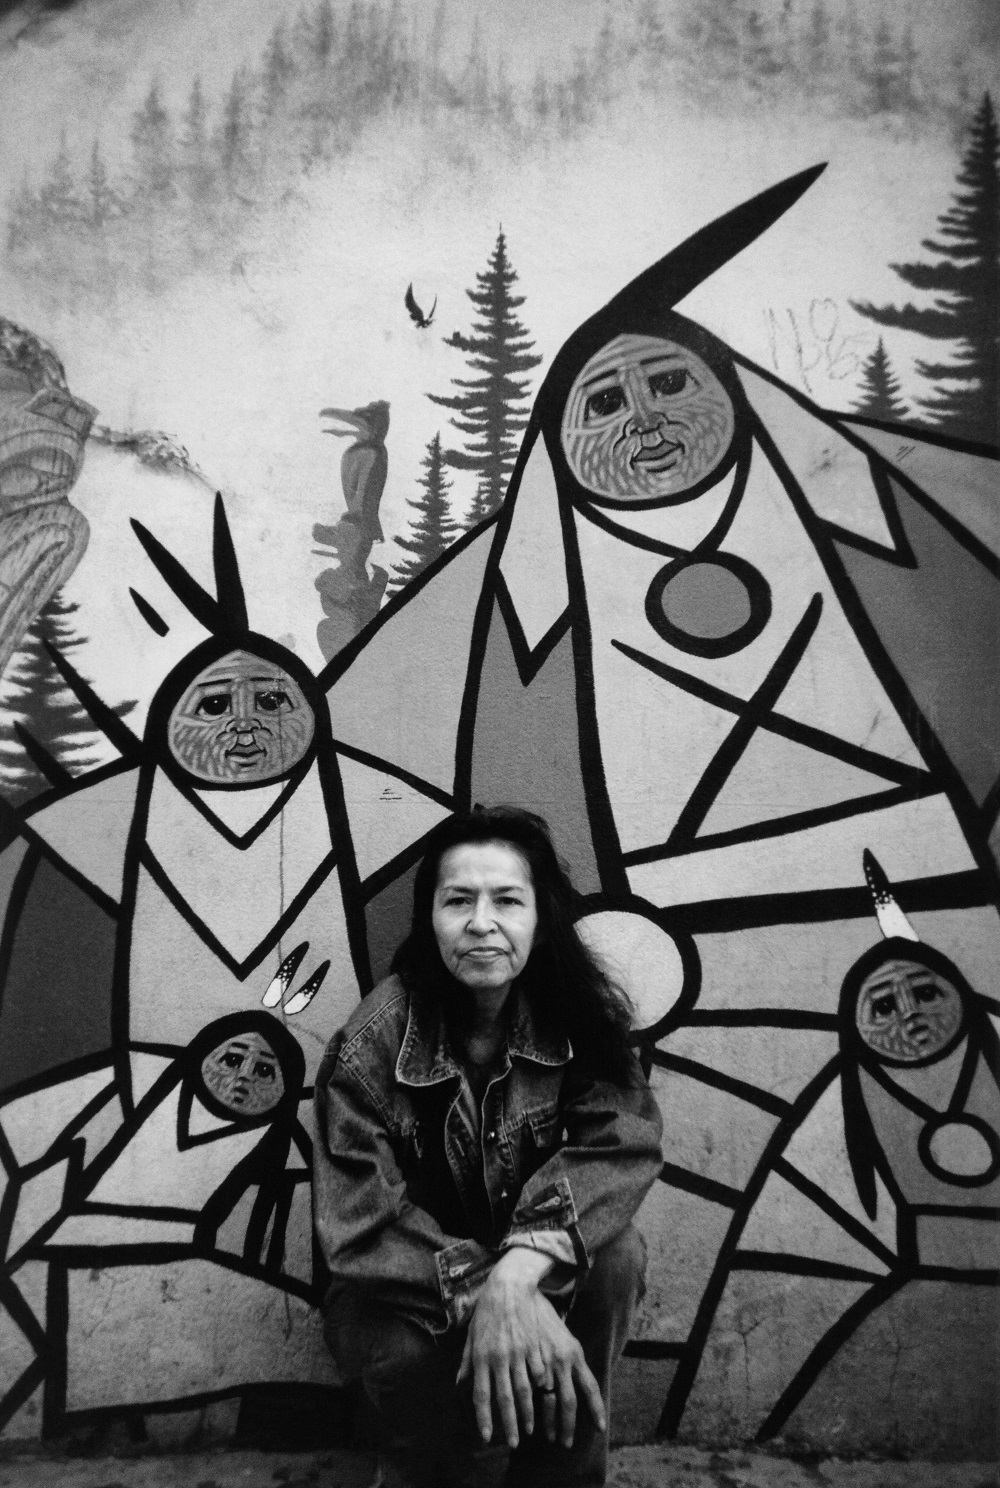 'Alkina at the Pow-wow' by Steven Mayes